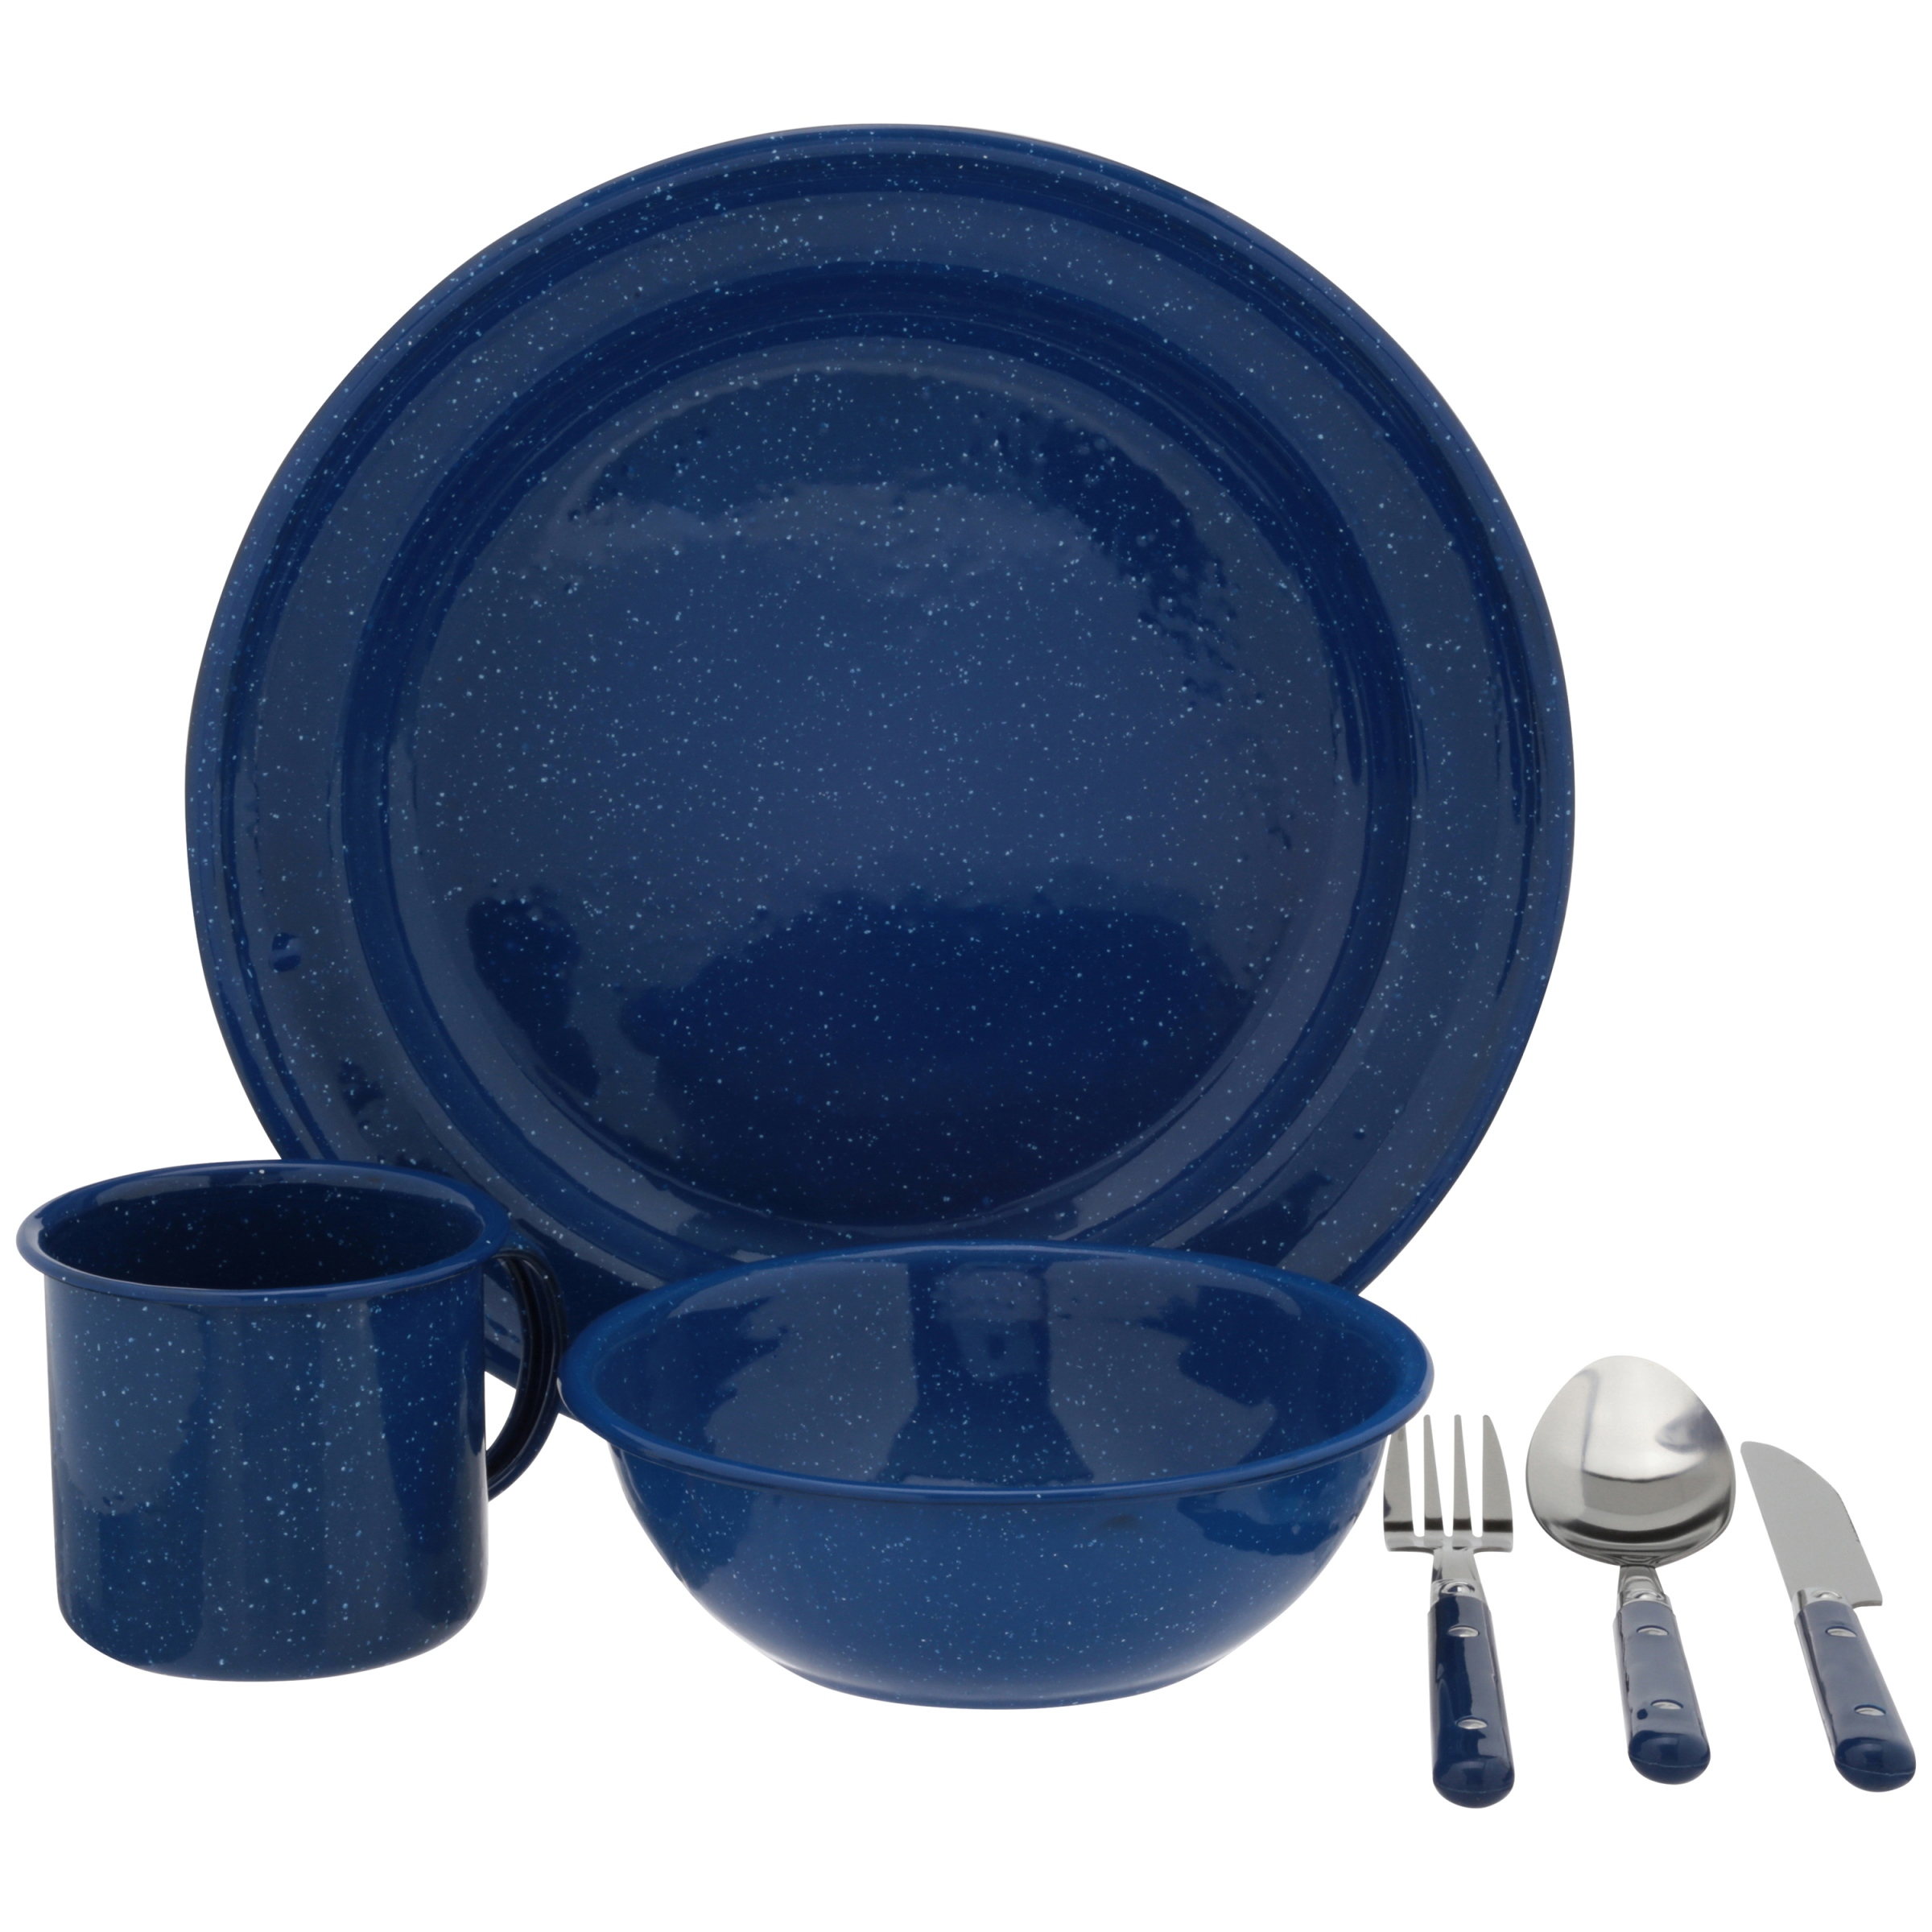 Ozark Trail 24-Piece Dinnerware Set, Blue by Wal-Mart Stores, Inc.